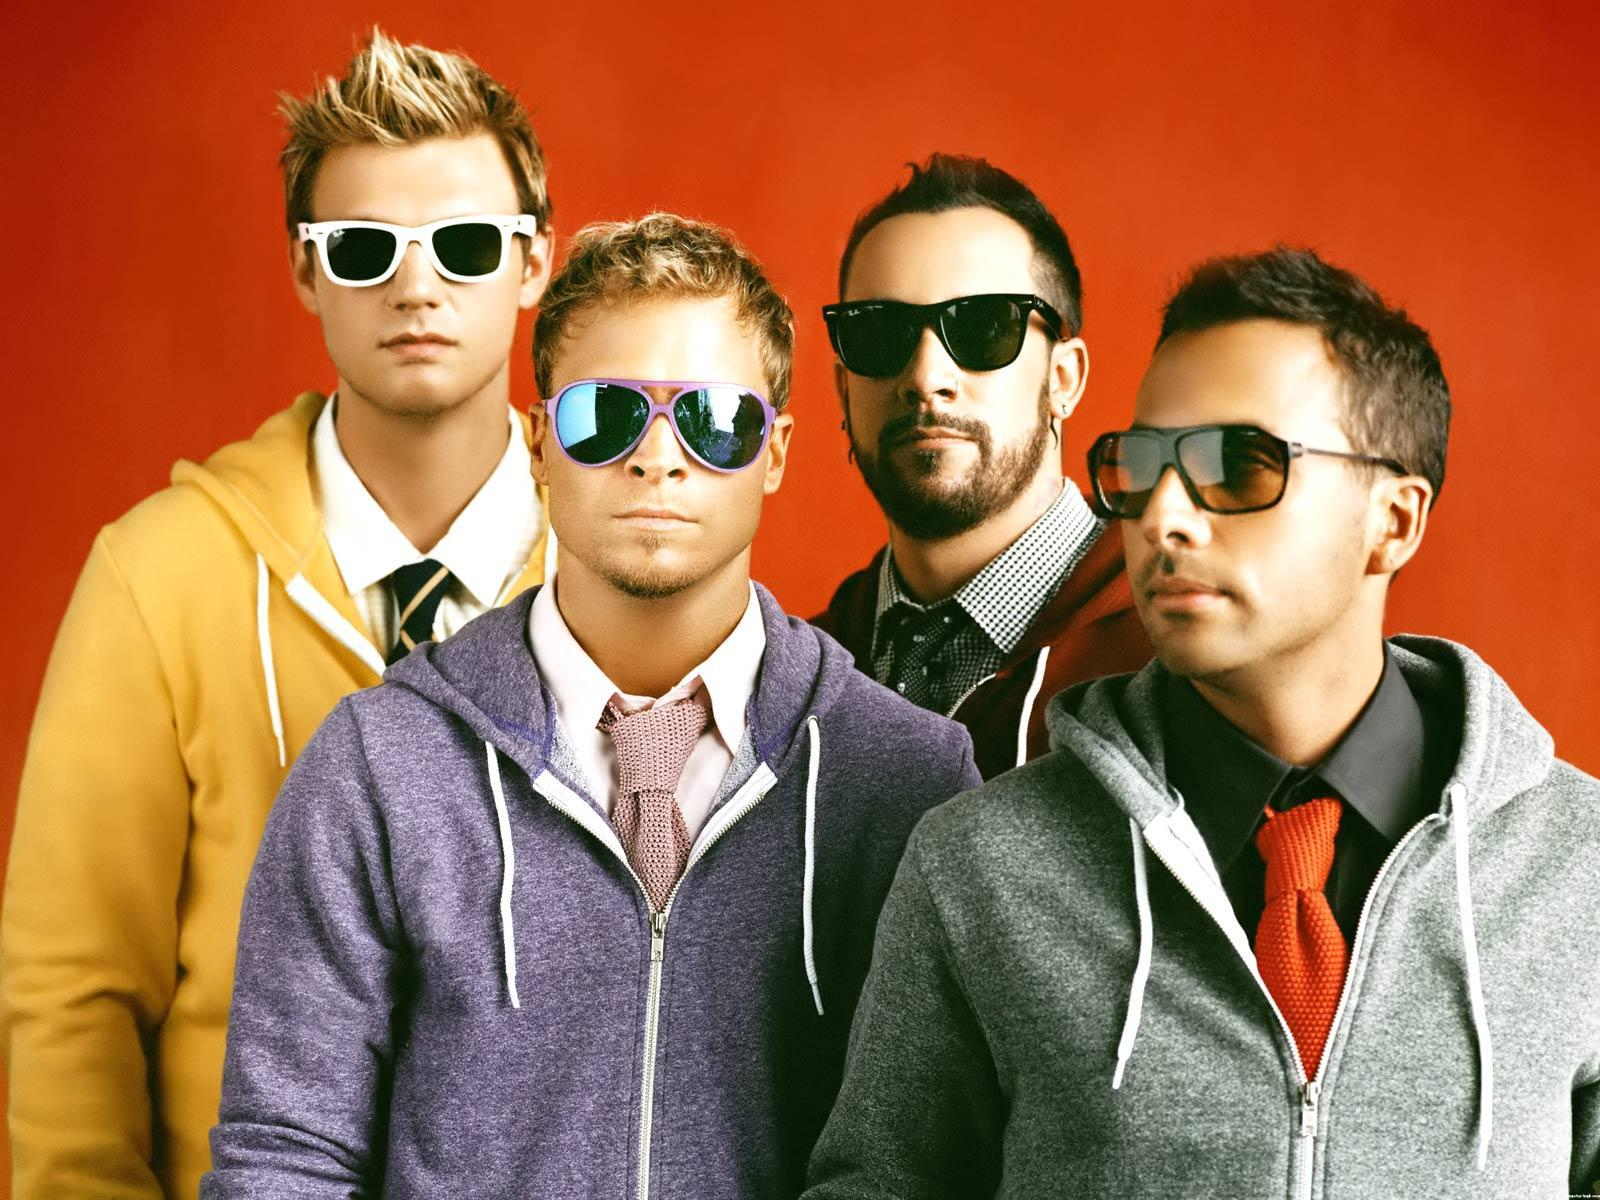 backstreet boys background information origin genres Wiki of backstreet boys net worth including how rich is backstreet boys backstreet boys net worth is $200 background information origin.